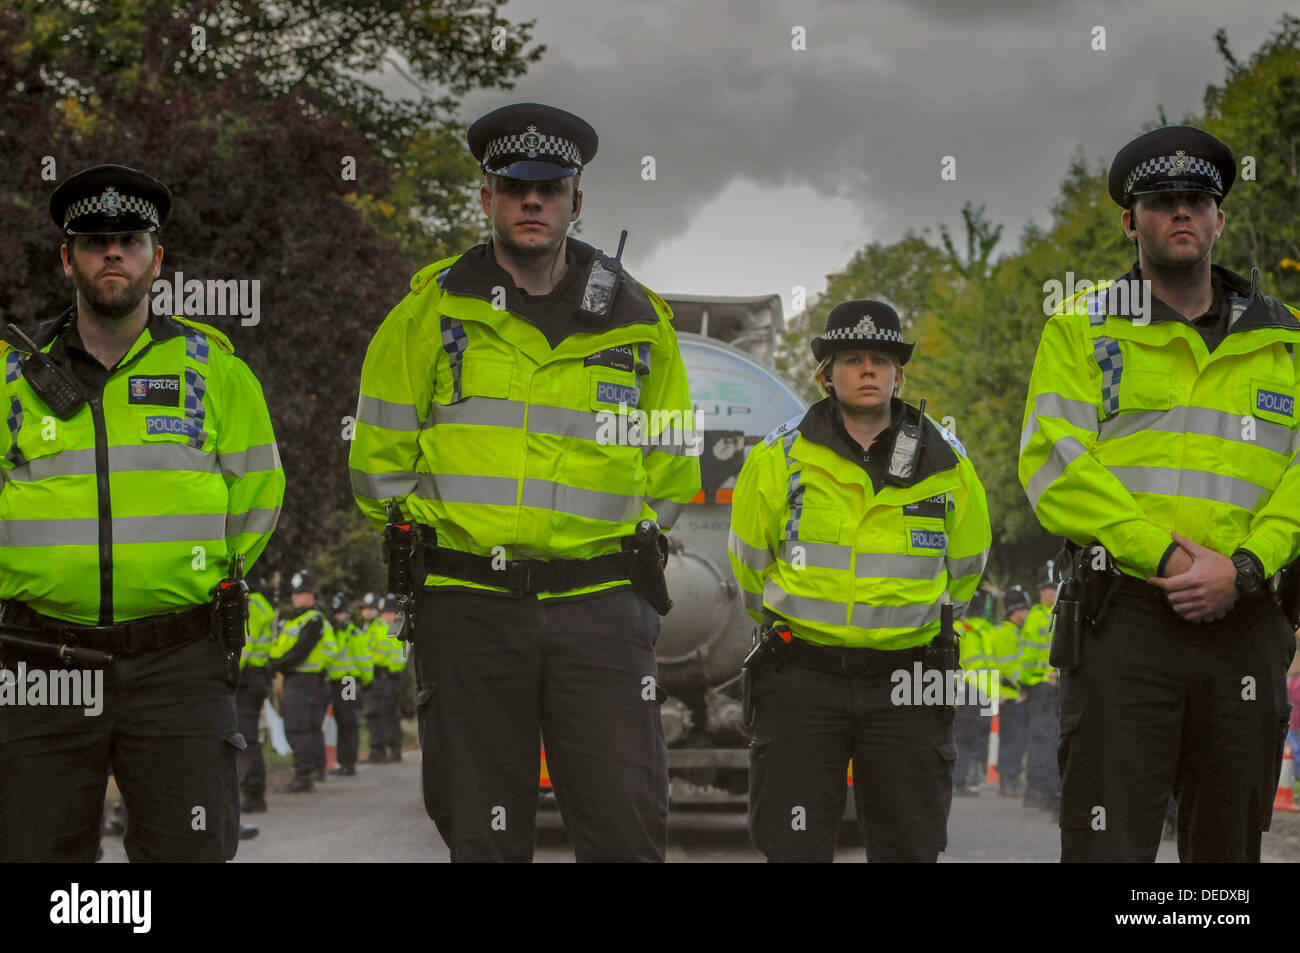 Balcombe, West Sussex, UK. 16th Sept, 2013. Cuadrilla tanker leaves the site surrounded by Police Officers who now outnumber protesters. Protesters lately have not seen to be disrupting Police in their duties and the atmosphere has been very relaxed and amicable.  Environmentalist rejoiced after todays failed attempt by West Sussex County  in the high court, due flawed case, to evict them from the road side camp. © David Burr/Alamy Live News - Stock Image